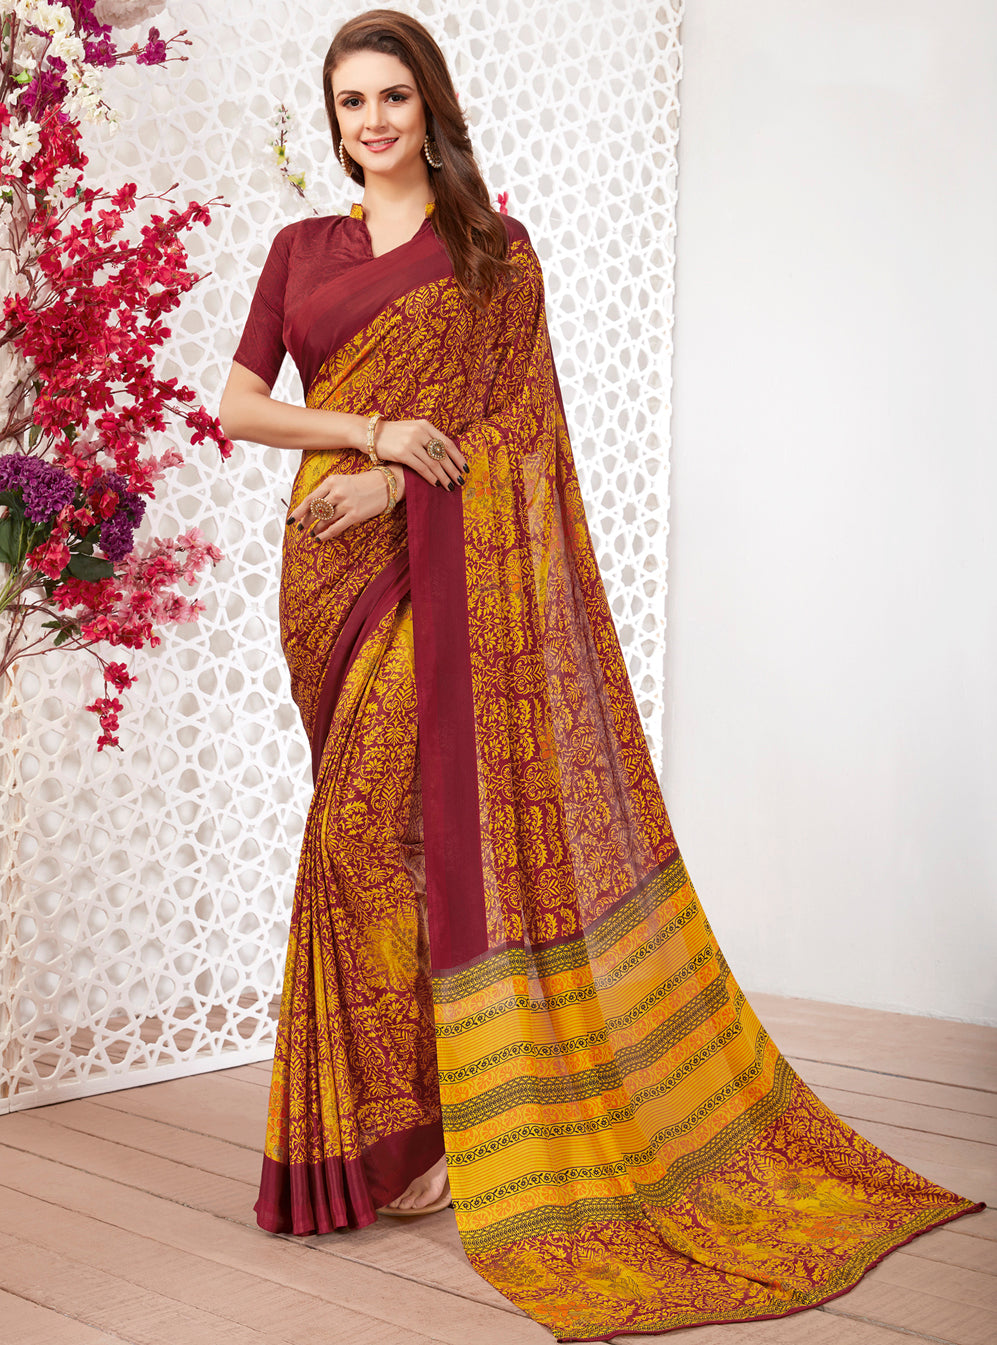 Yellow & Maroon Color Crepe Light Weight Printed Sarees NYF-7255